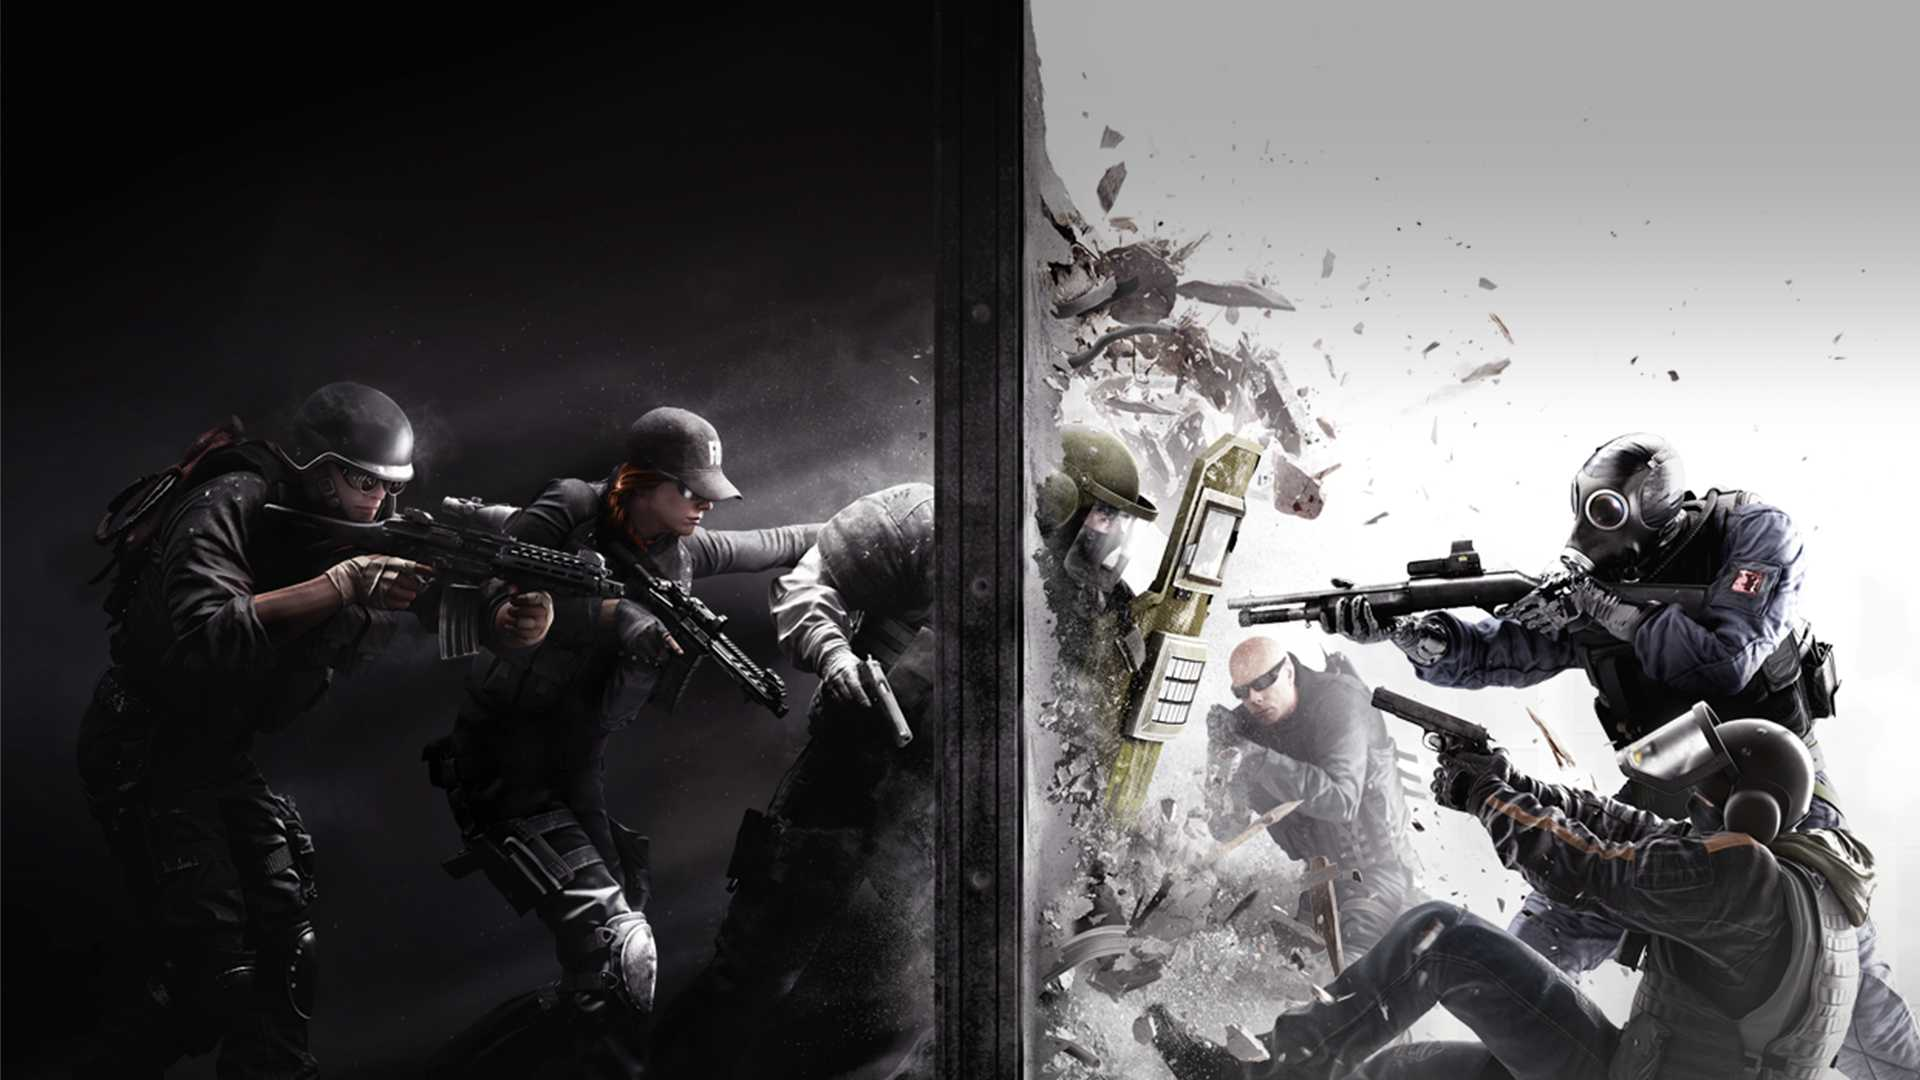 Wallpaper Rainbow Six Siege Year 3 Pass 4k 8k Games: Buy Tom Clancy's Rainbow Six Siege Complete Edition